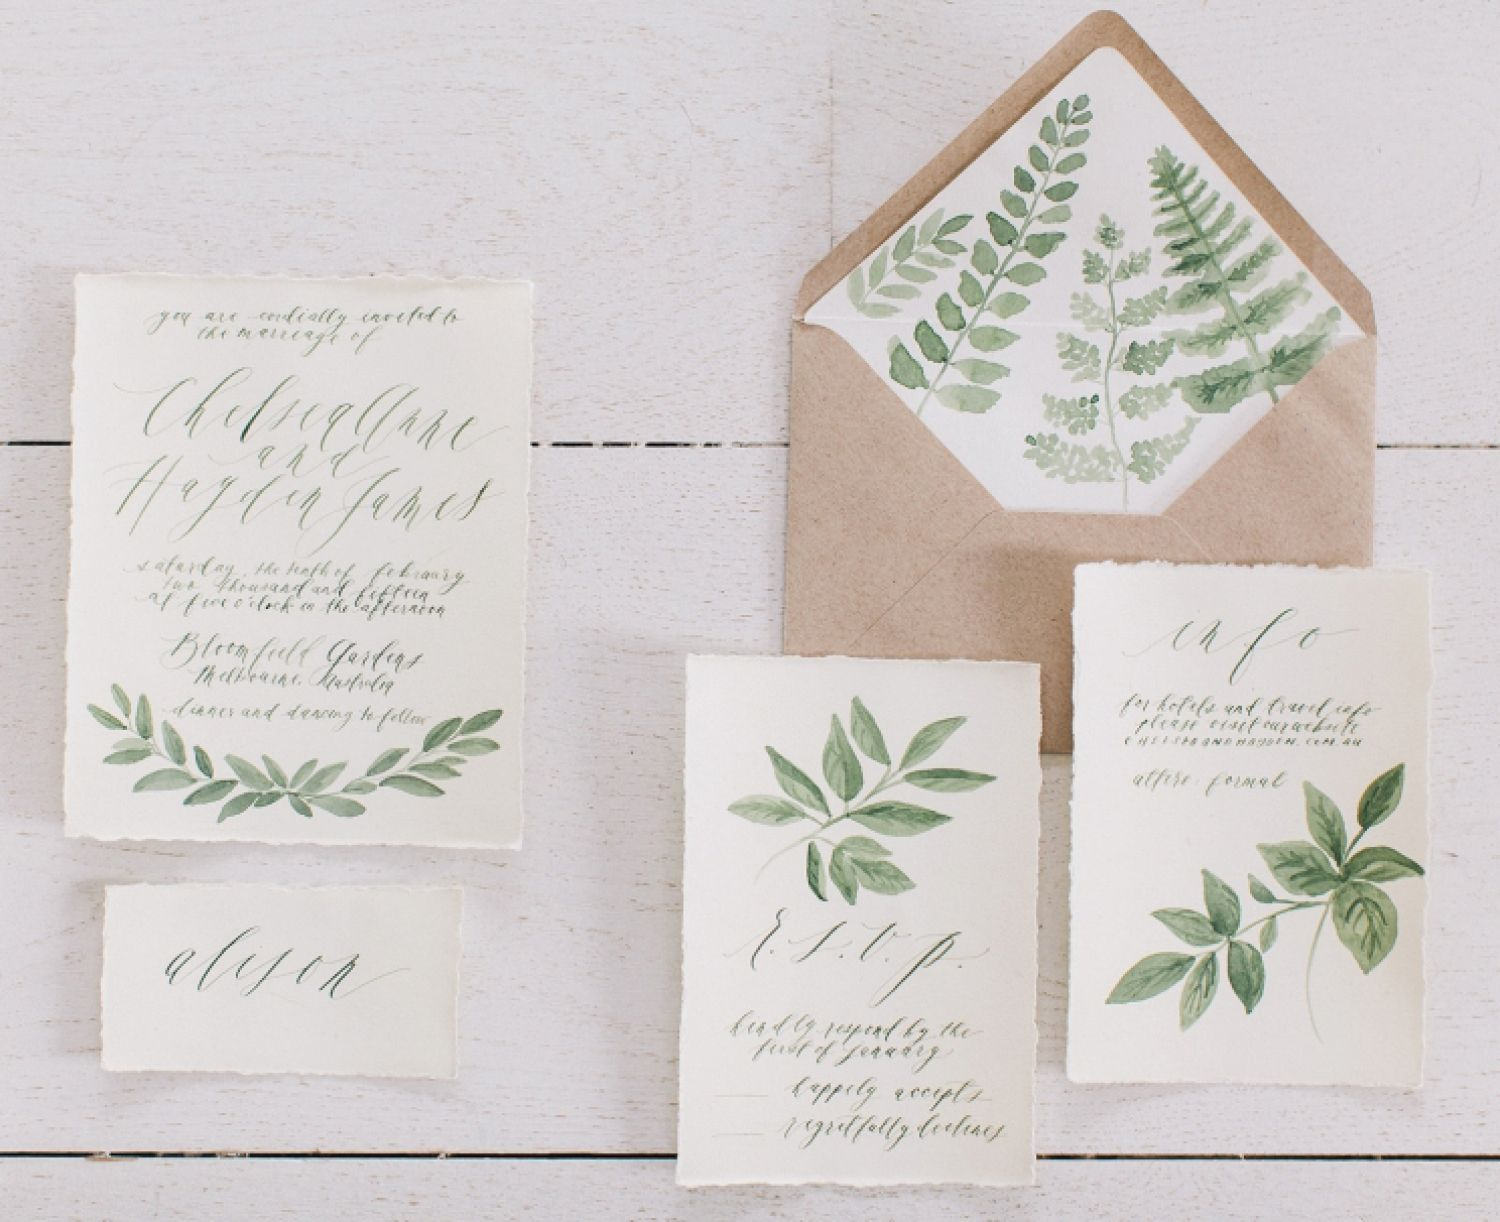 Botanical Weding Invitations 032 - Botanical Weding Invitations